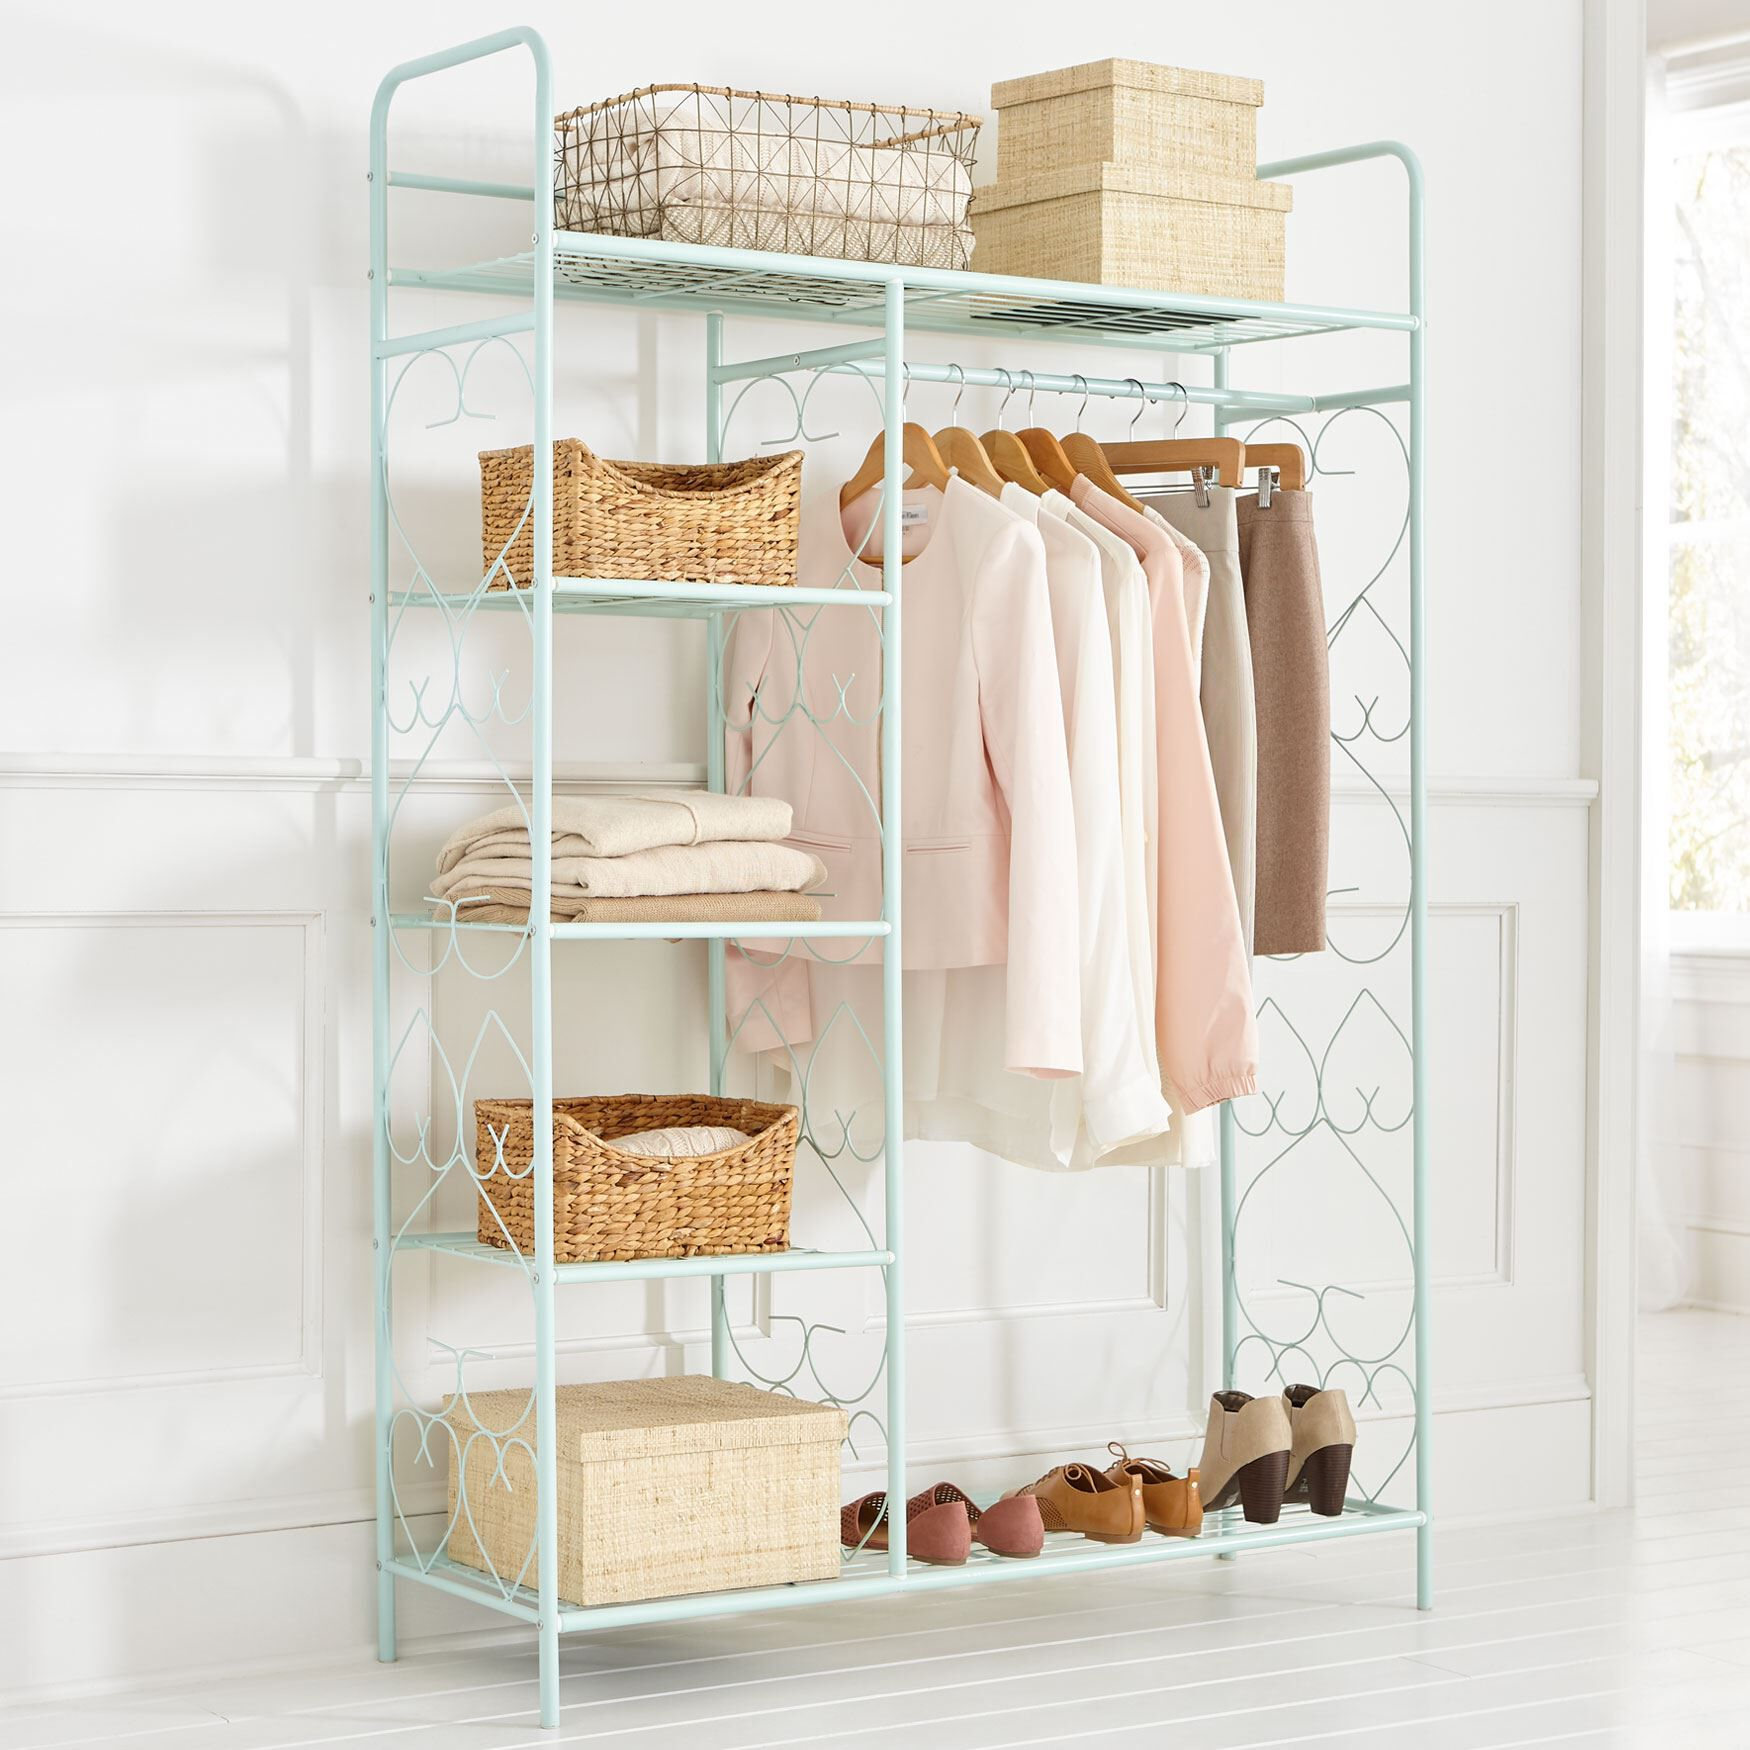 5 Tier Metal Closet With Hanging Rod